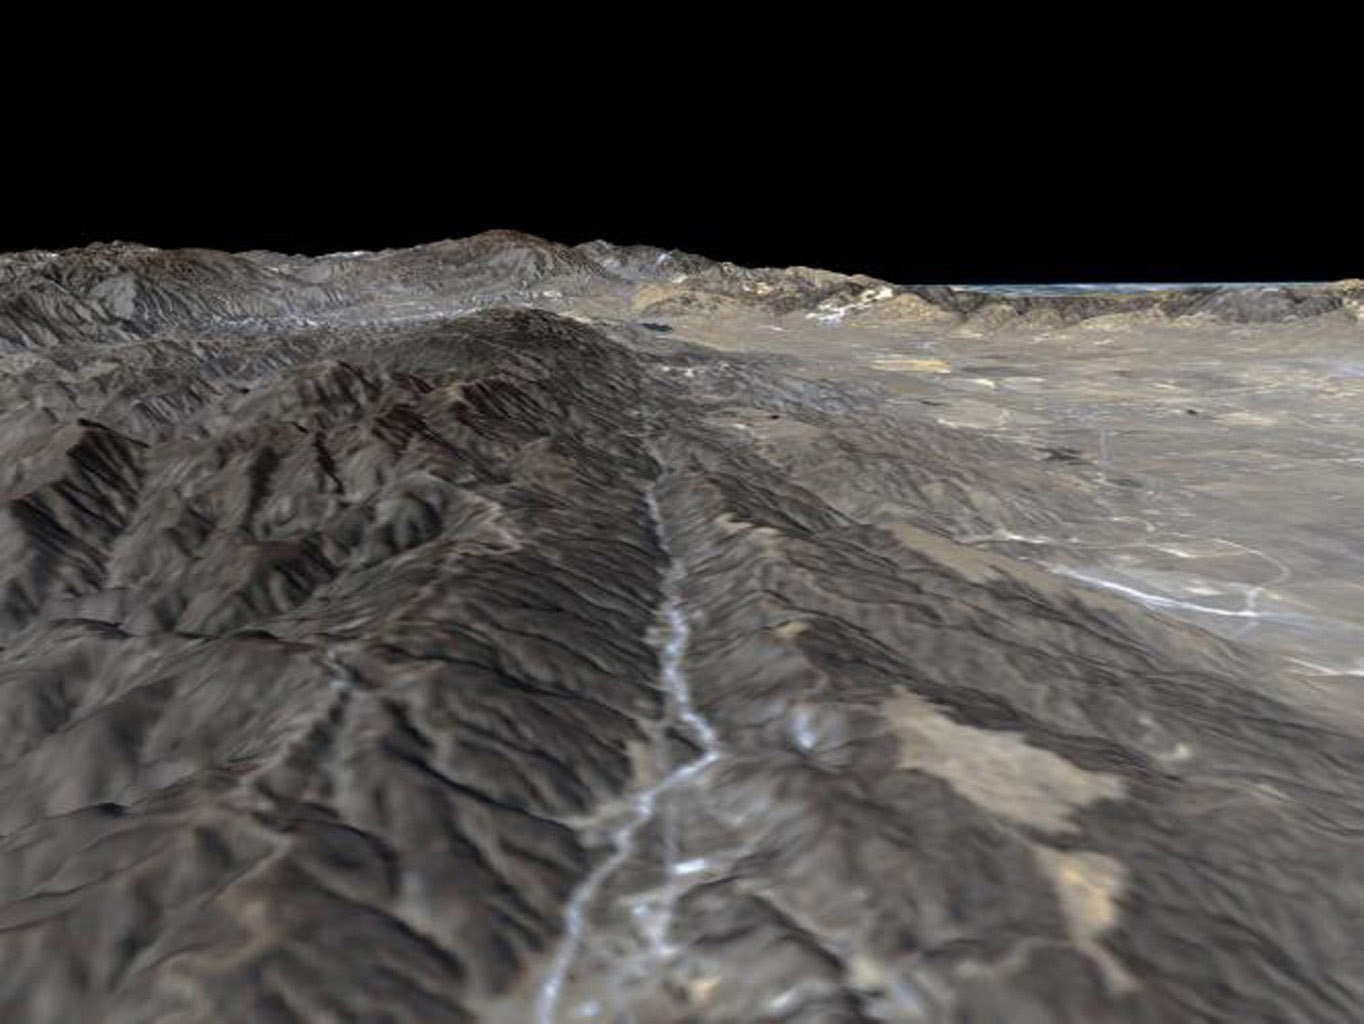 The prominent linear feature straight down the center of this perspective view is California's famous San Andreas Fault. The image was created with data from NASA's Shuttle Radar Topography Mission.